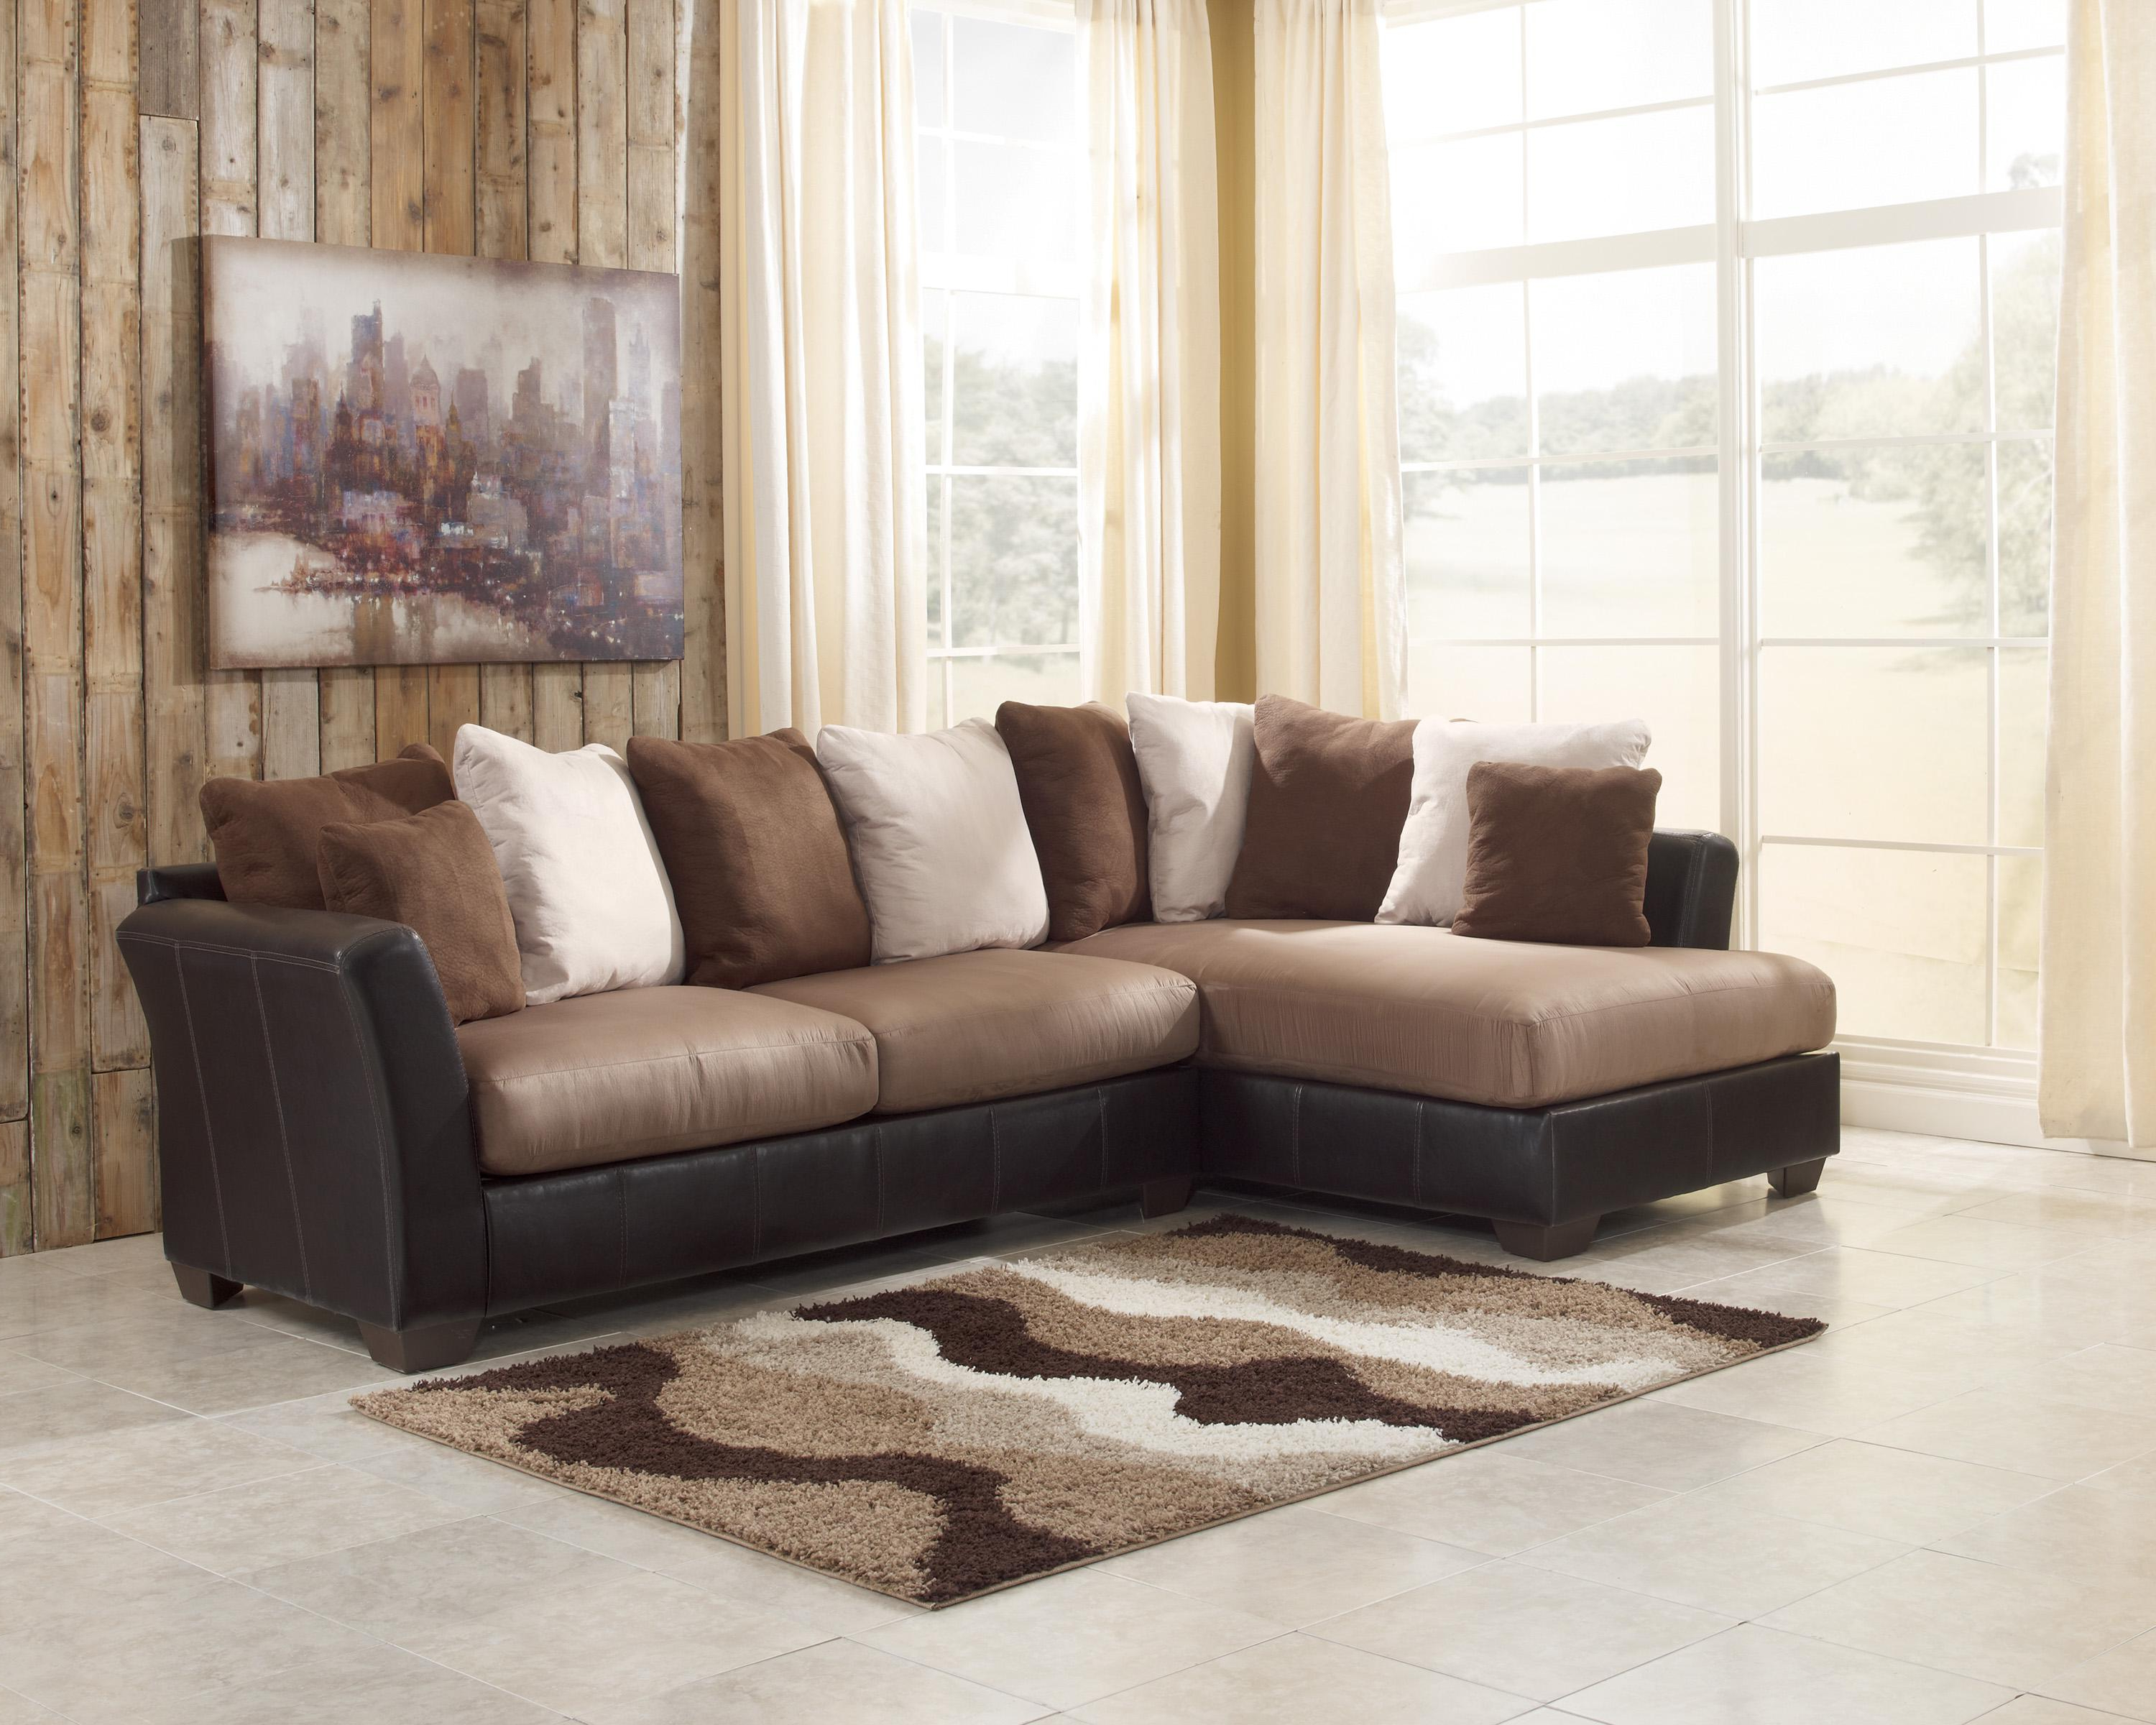 A 2 Piece Sectional Is A Unique Addition To Any Living Room – Elites For Preferred Evan 2 Piece Sectionals With Raf Chaise (Gallery 6 of 20)